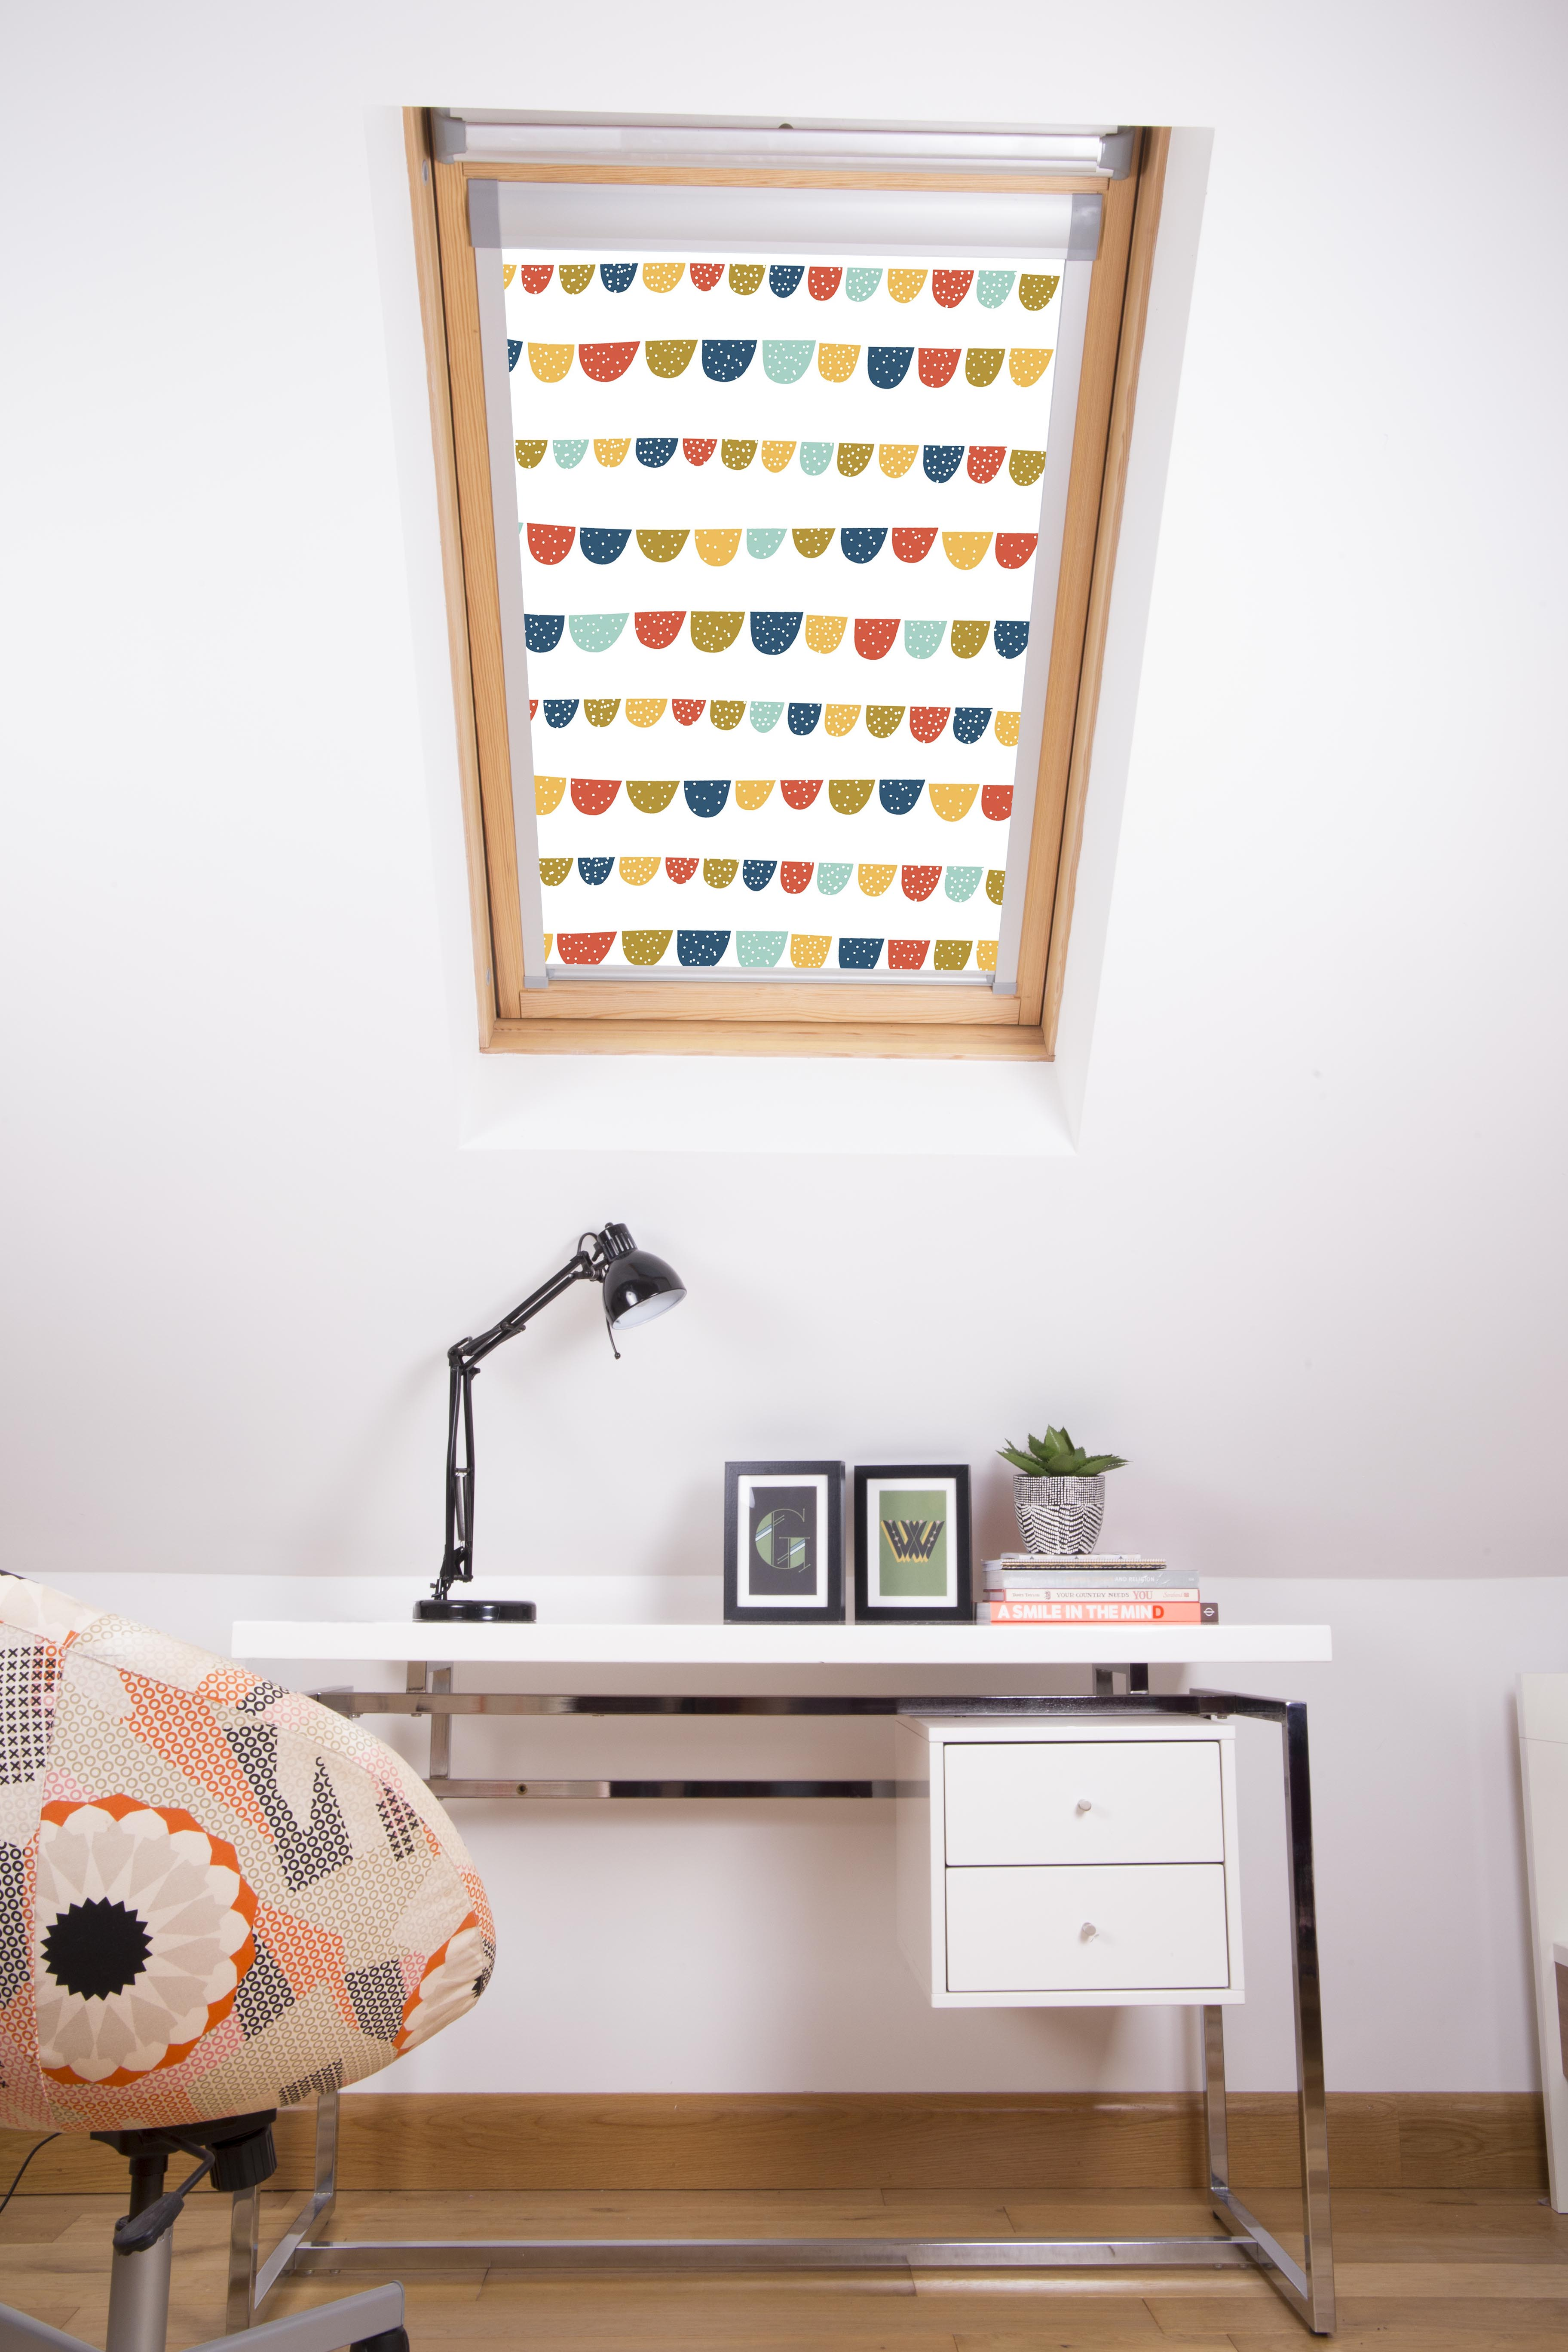 Playing Bunting Bright Loft Blind in a closed position